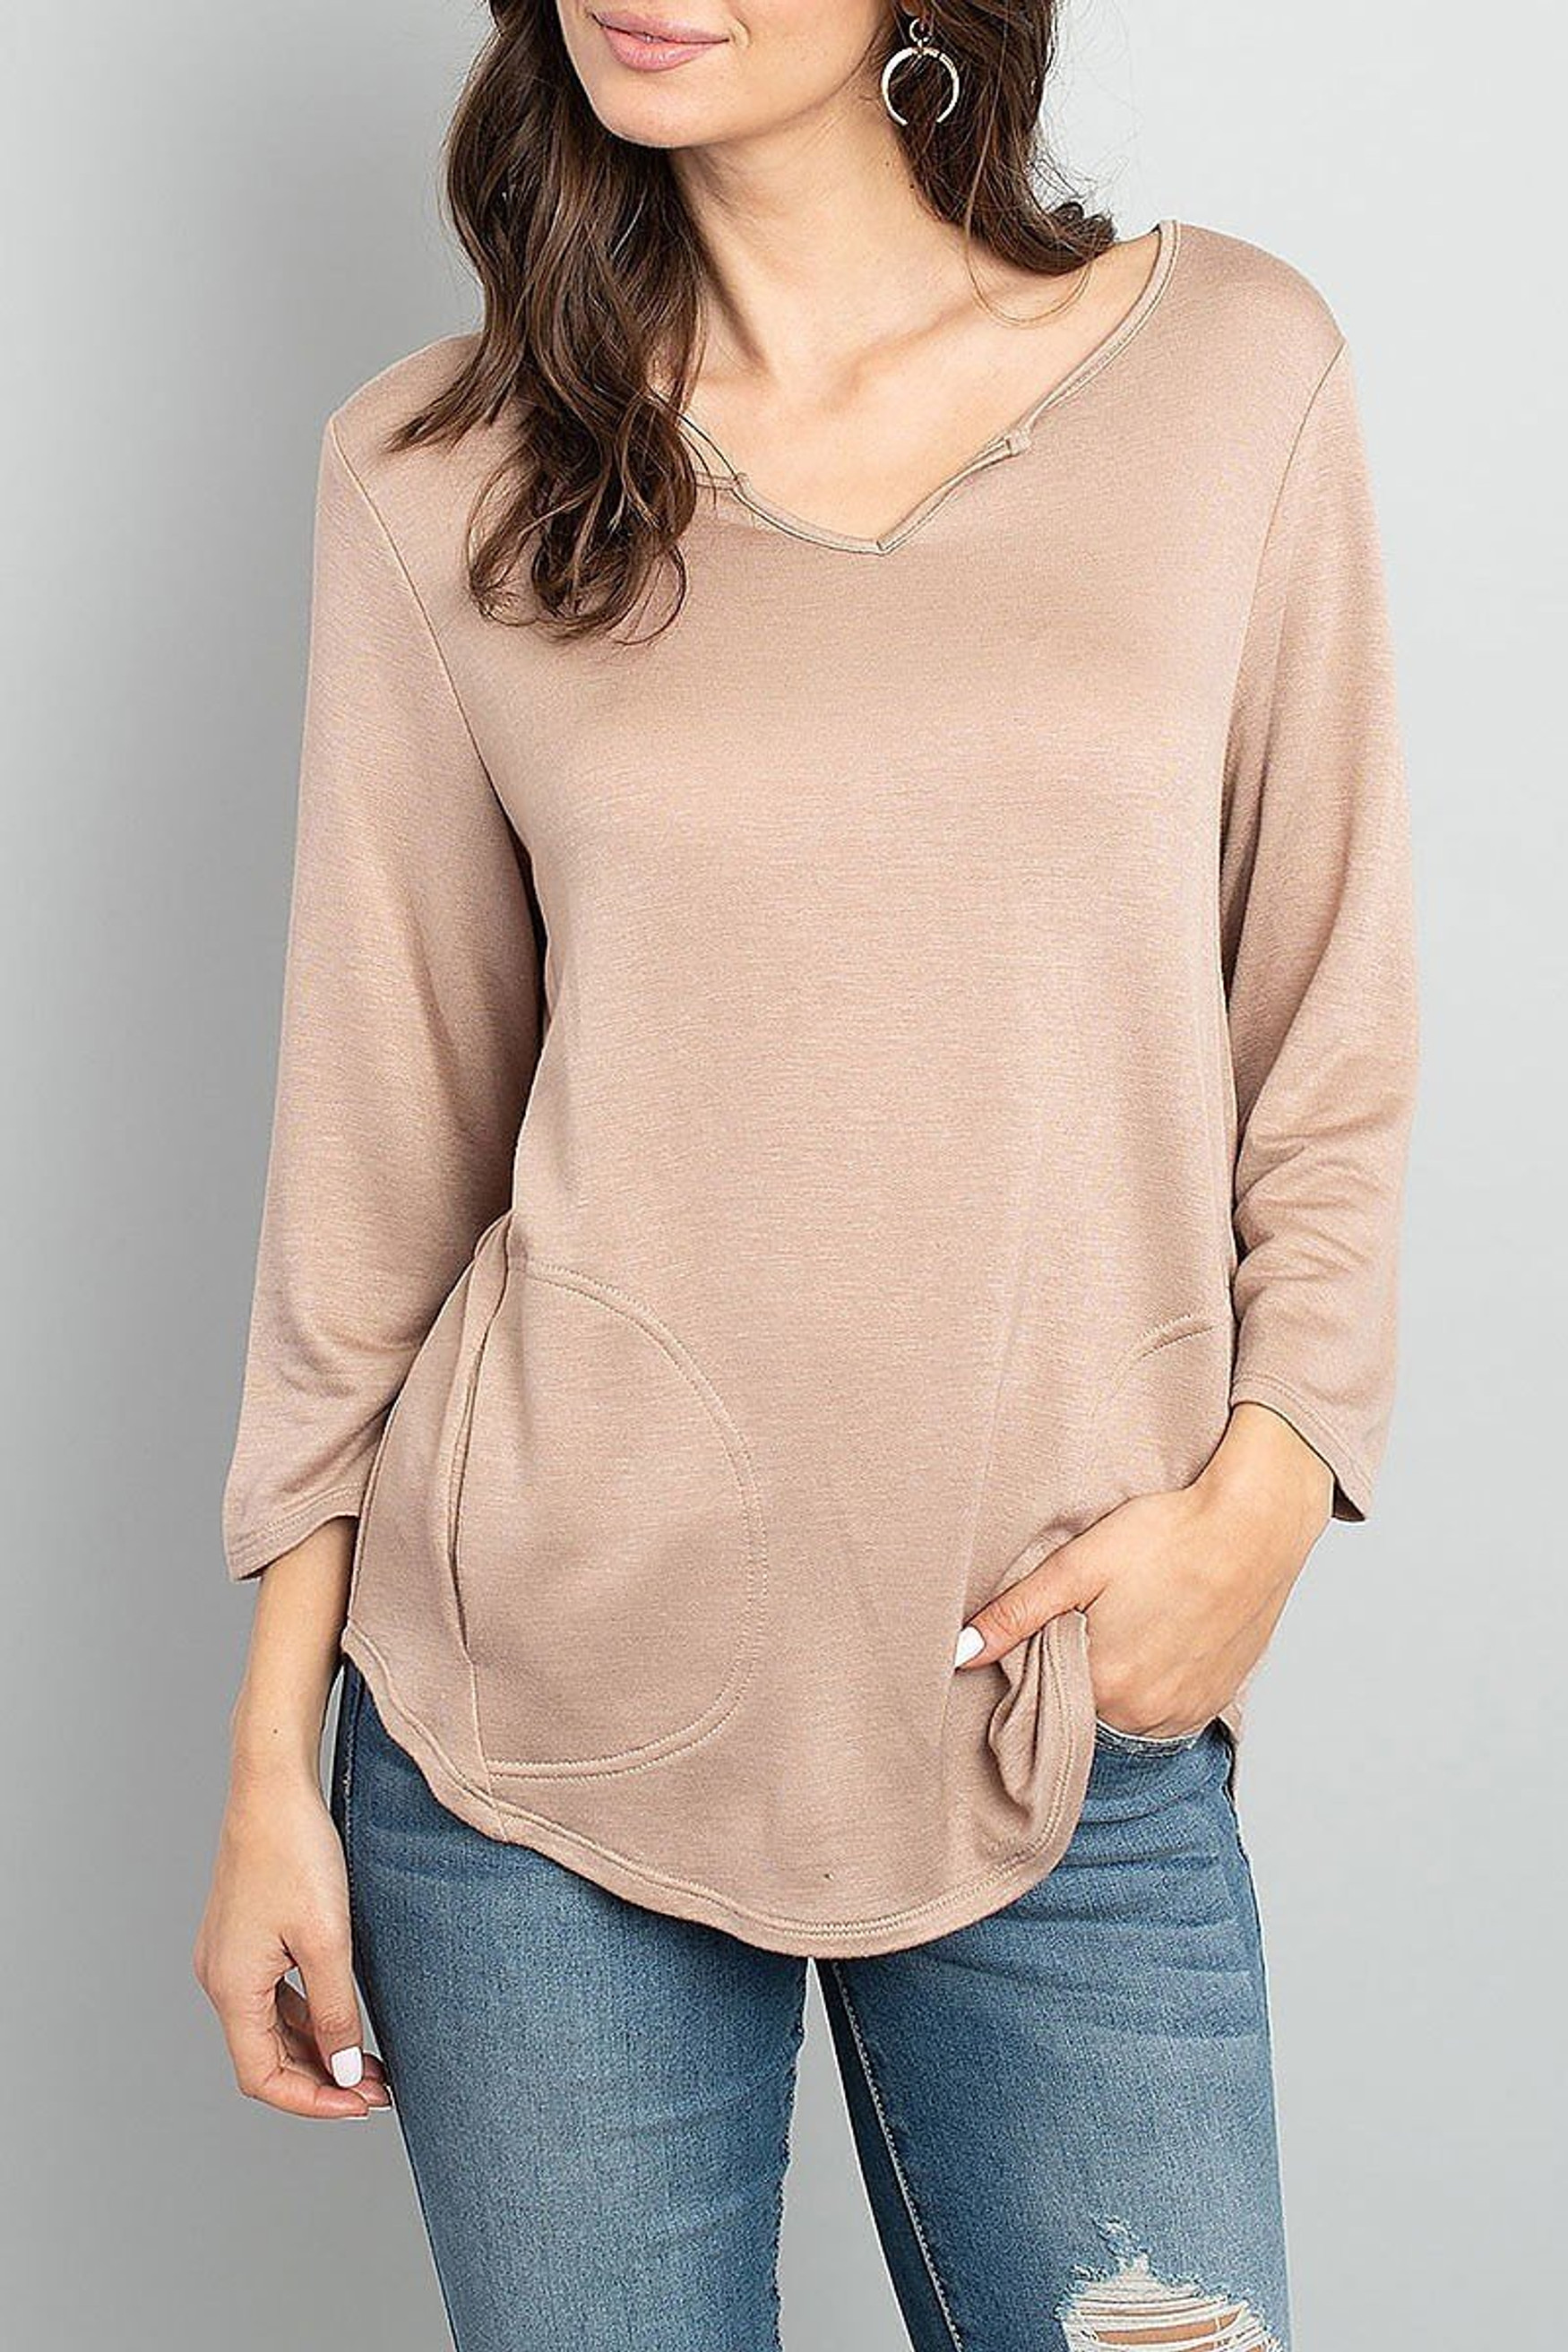 Taupe Split Neck Round Hem Long Sleeve Tunic with Pockets